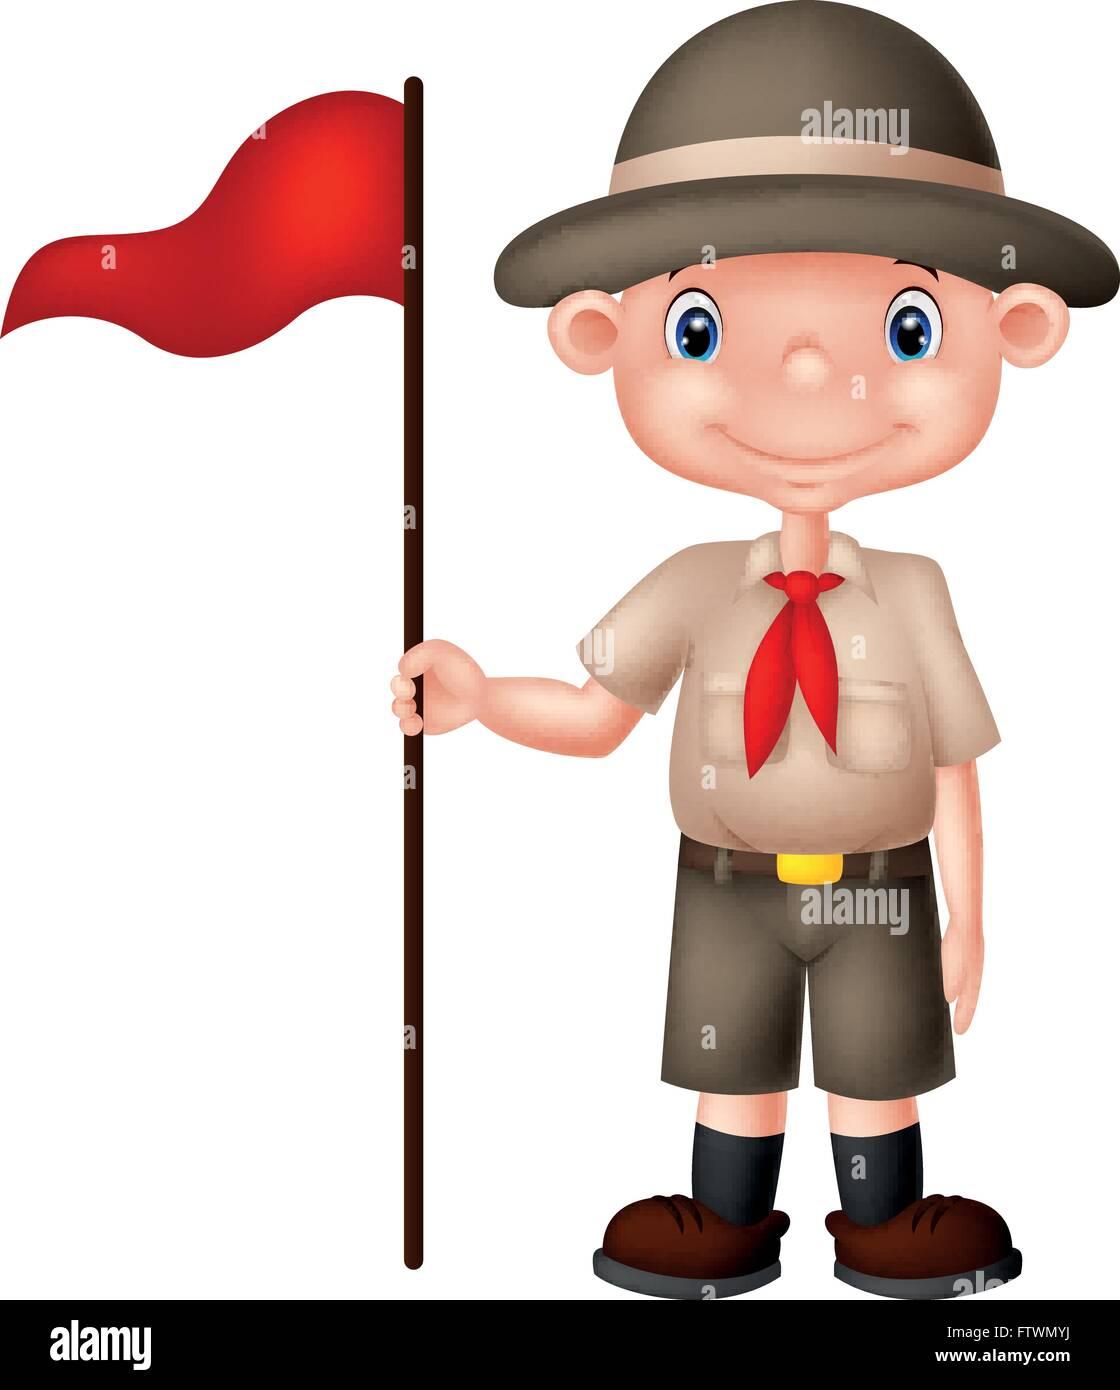 hight resolution of cartoon boy scout holding red flag